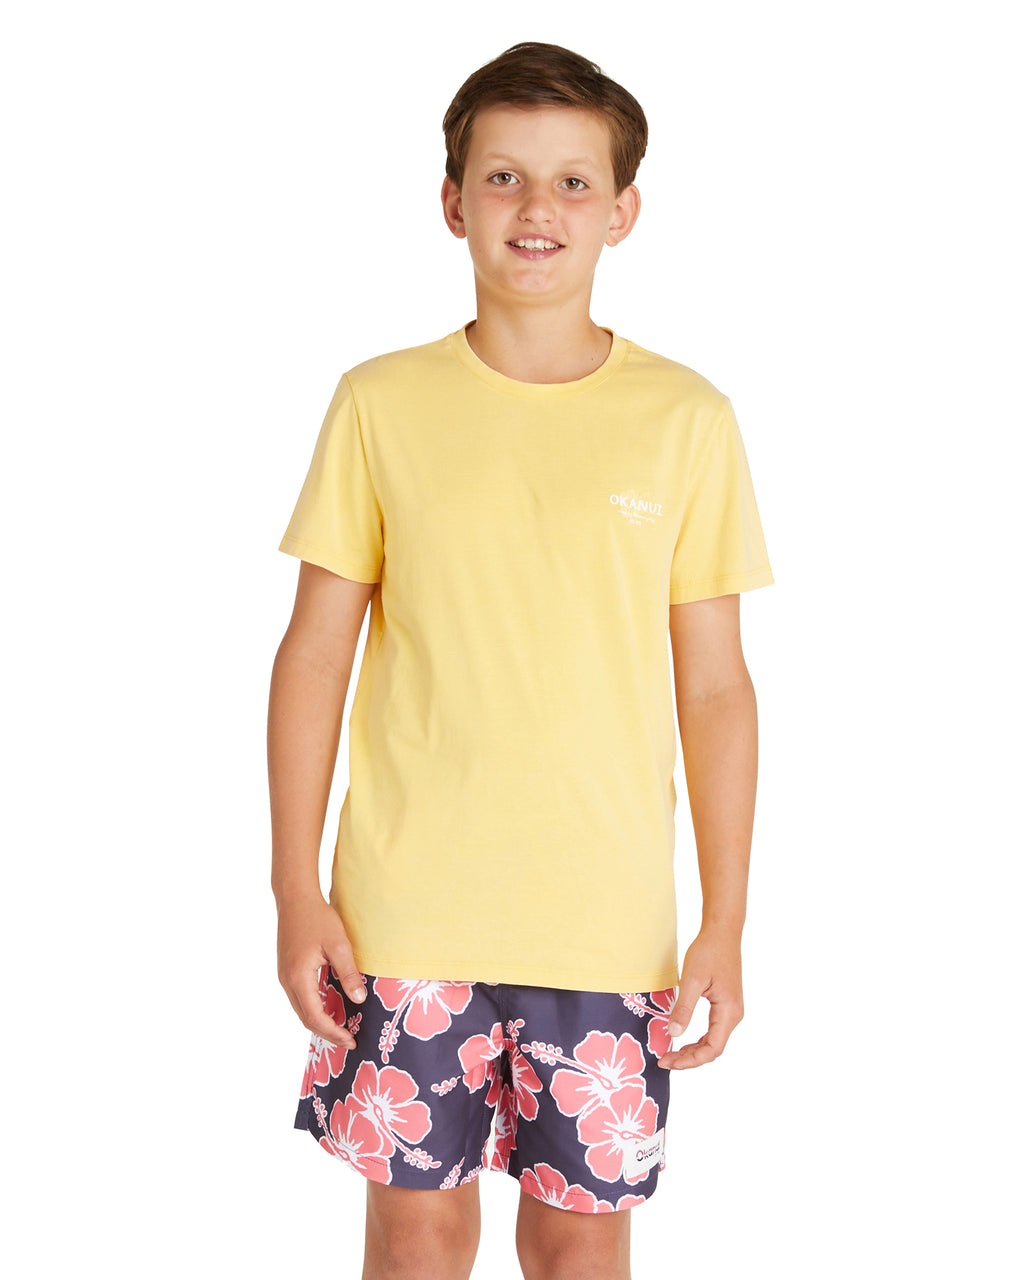 Kids T's - Escaping The Everyday - Mango